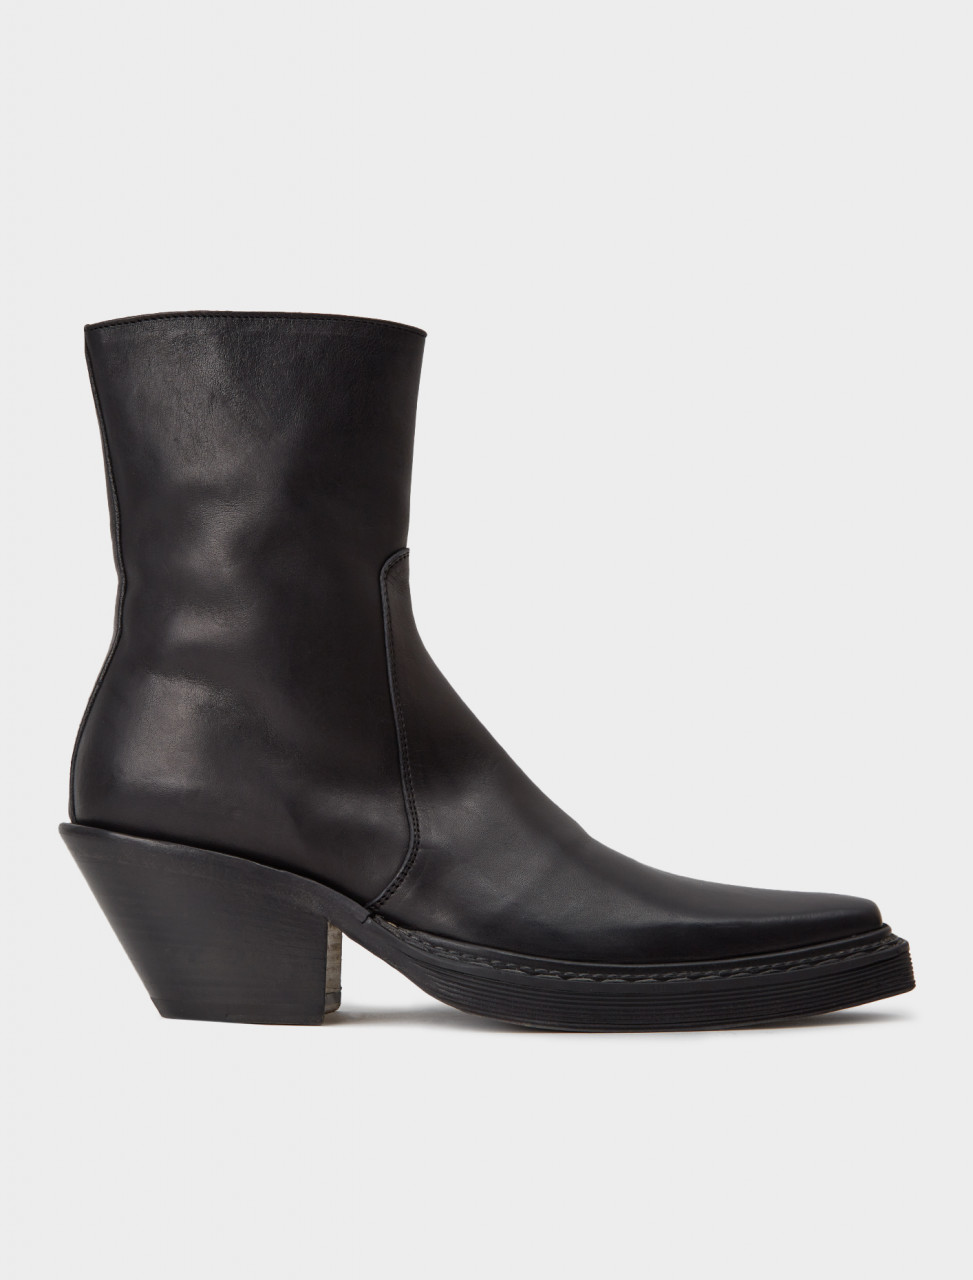 110-AD0279-900 ACNE STUDIOS FN WN SHOE000345 BLACK